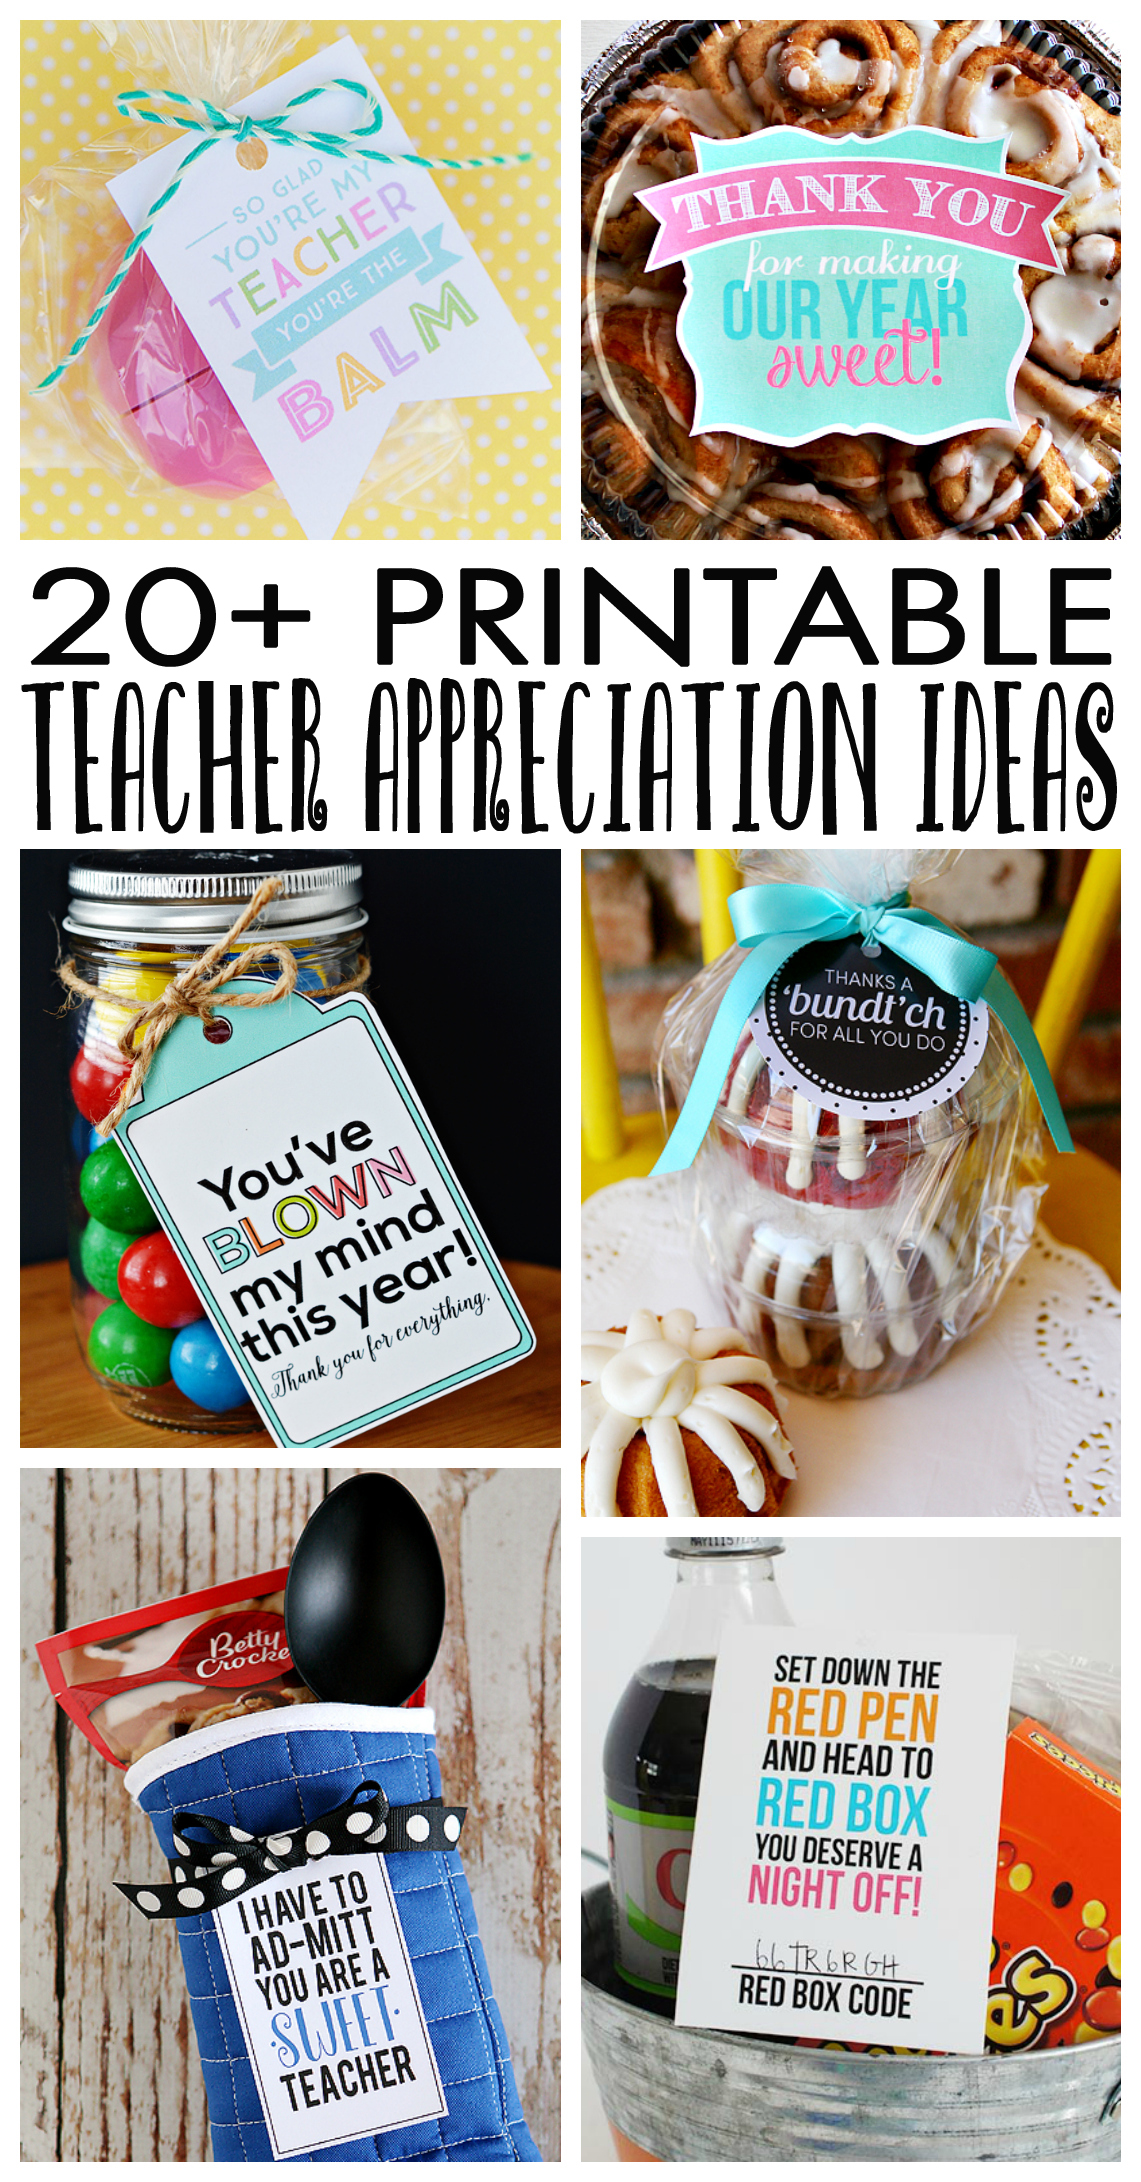 Over 20 Teacher Appreciation Ideas that include Free Printables!